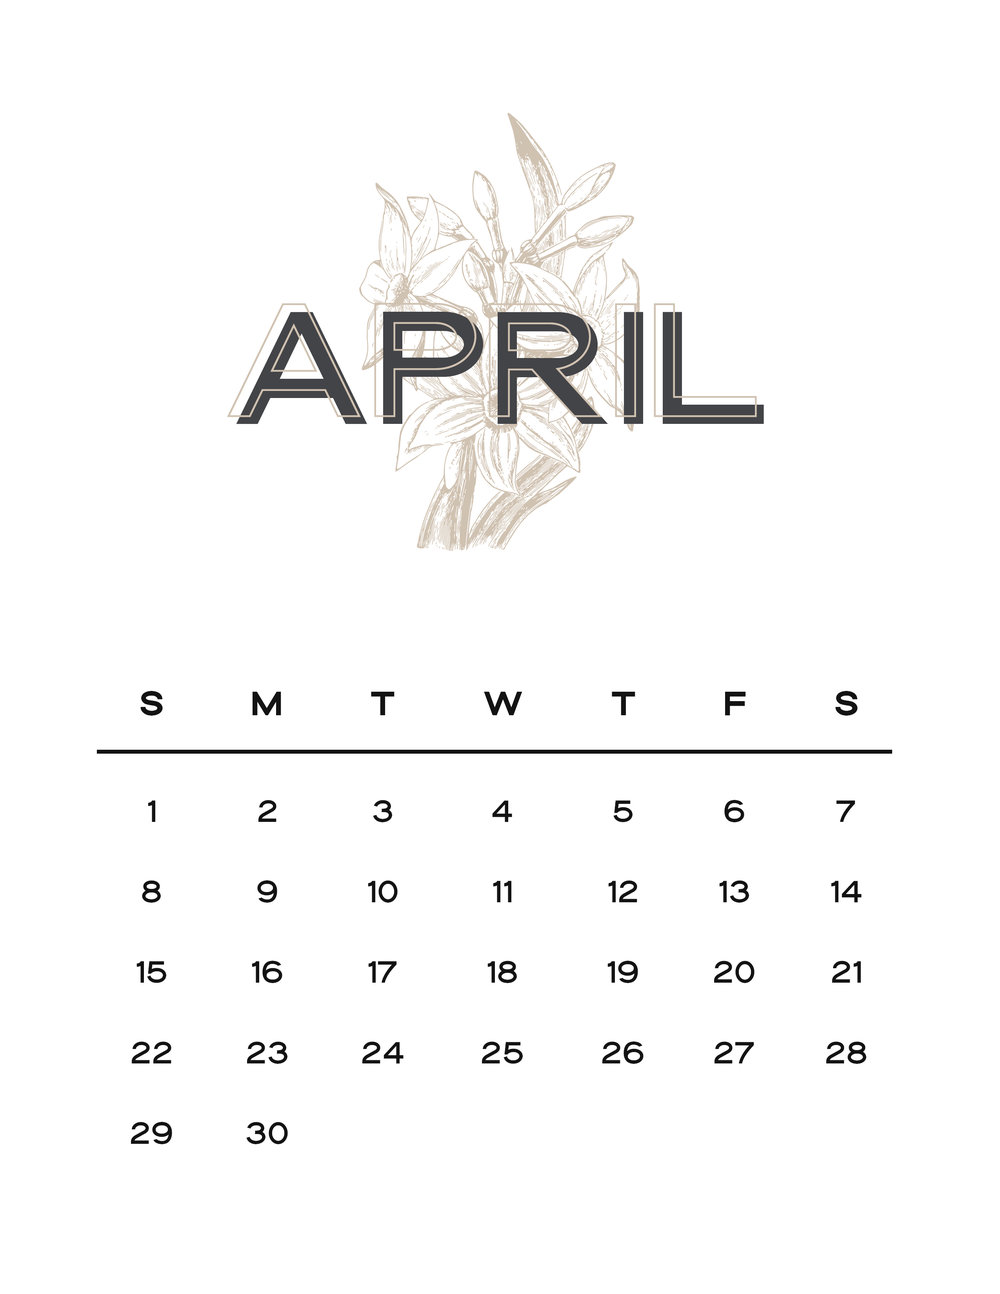 April Free Modern Design Printable Calendar Jen Wagner Co.